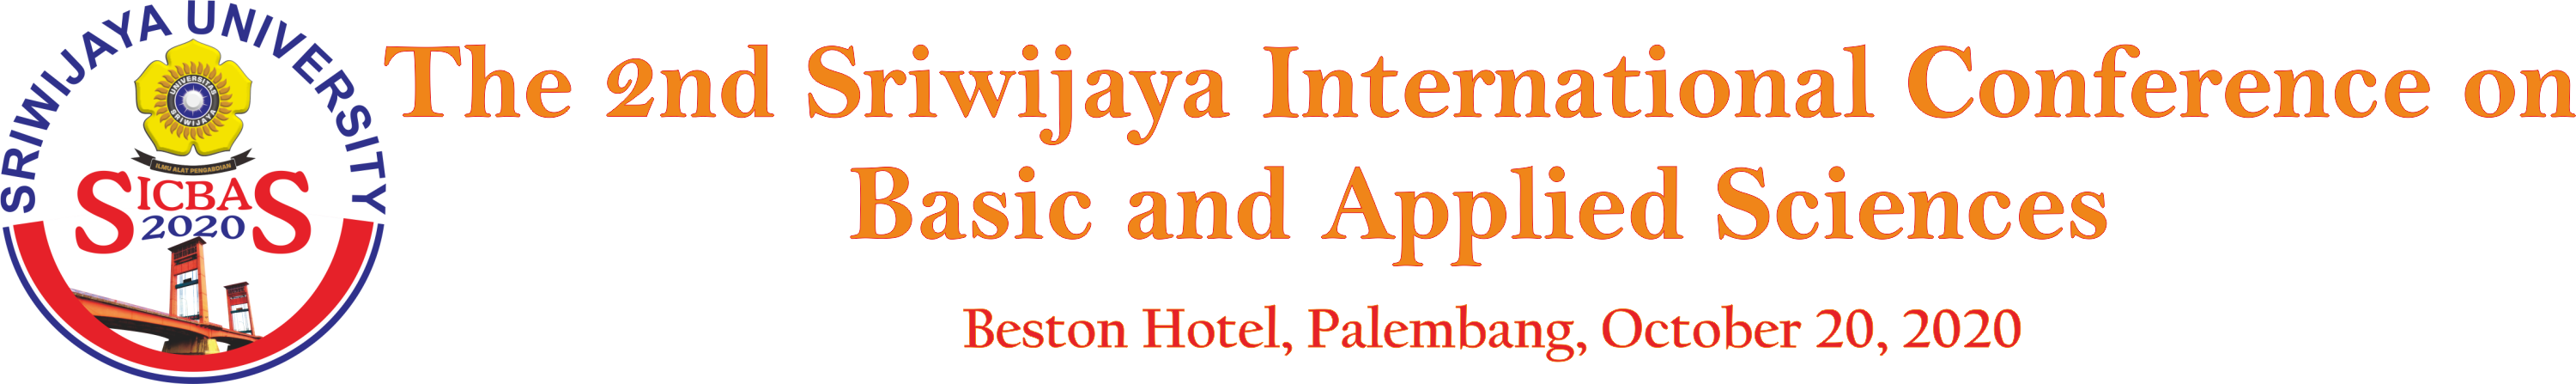 THE 2ND SRIWIJAYA INTERNATIONAL CONFERENCE ON BASIC AND APPLIED SCIENCES